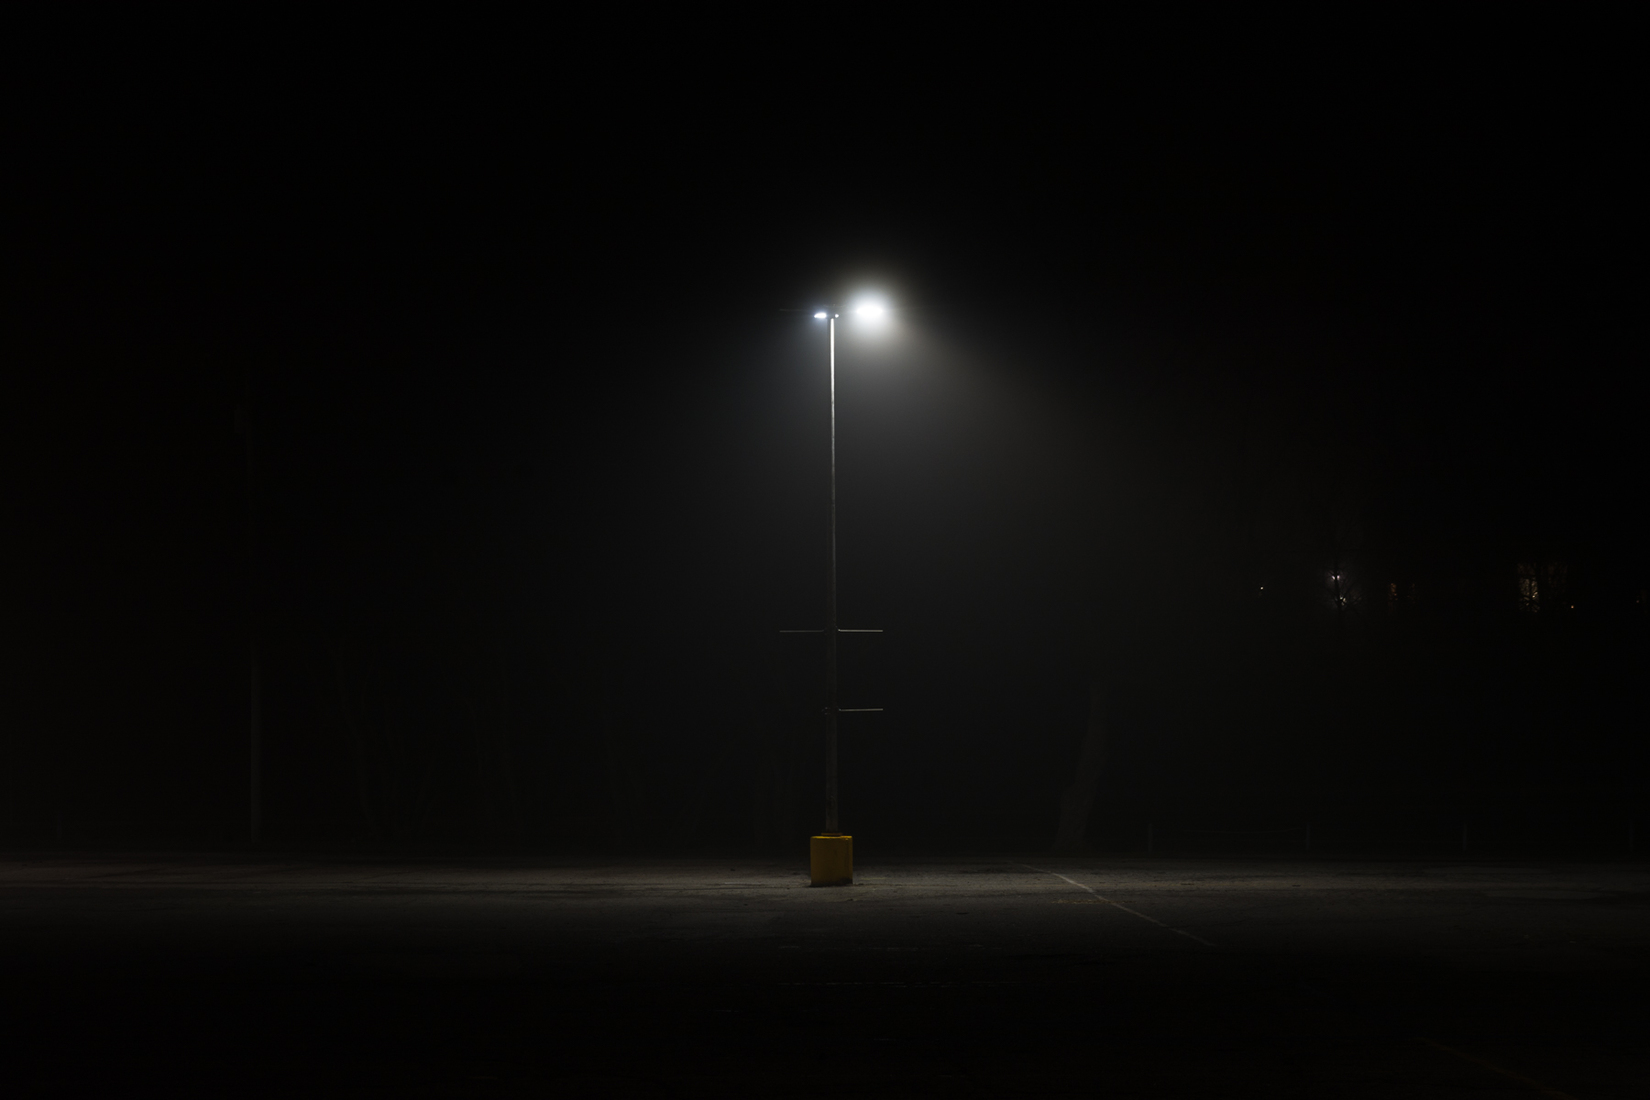 Night Lights Night Lights No. 13 - Fog Lamps